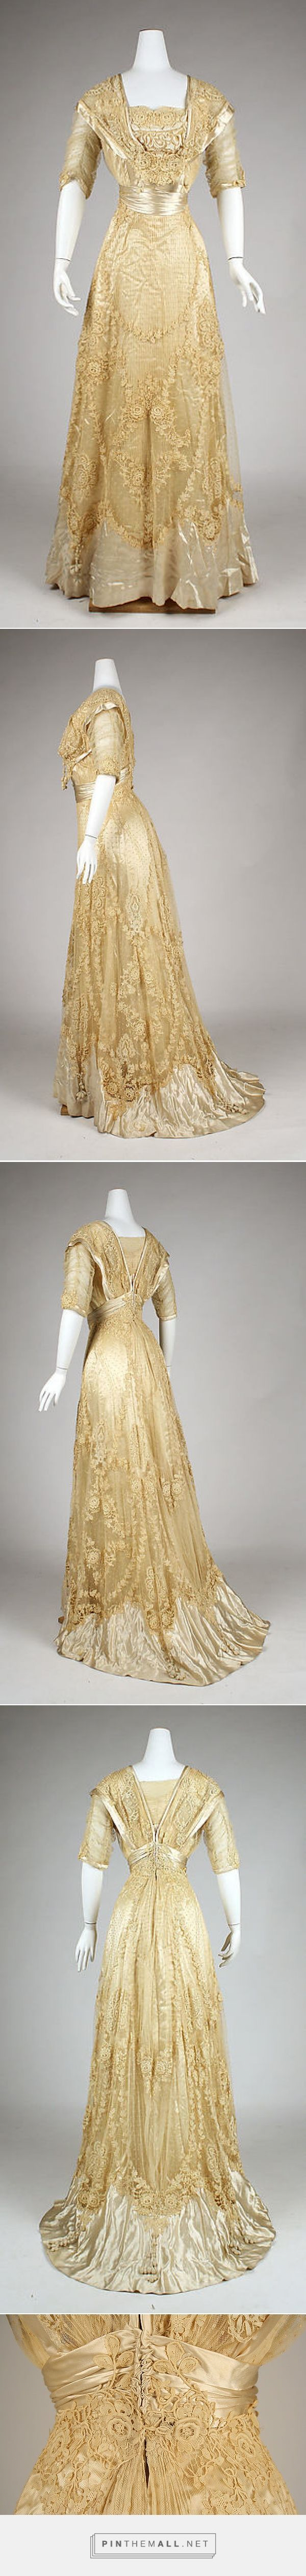 Ball gown ca. 1908 American This is Sadie the young housekeeper's ballgown commissioned by the Lowes.